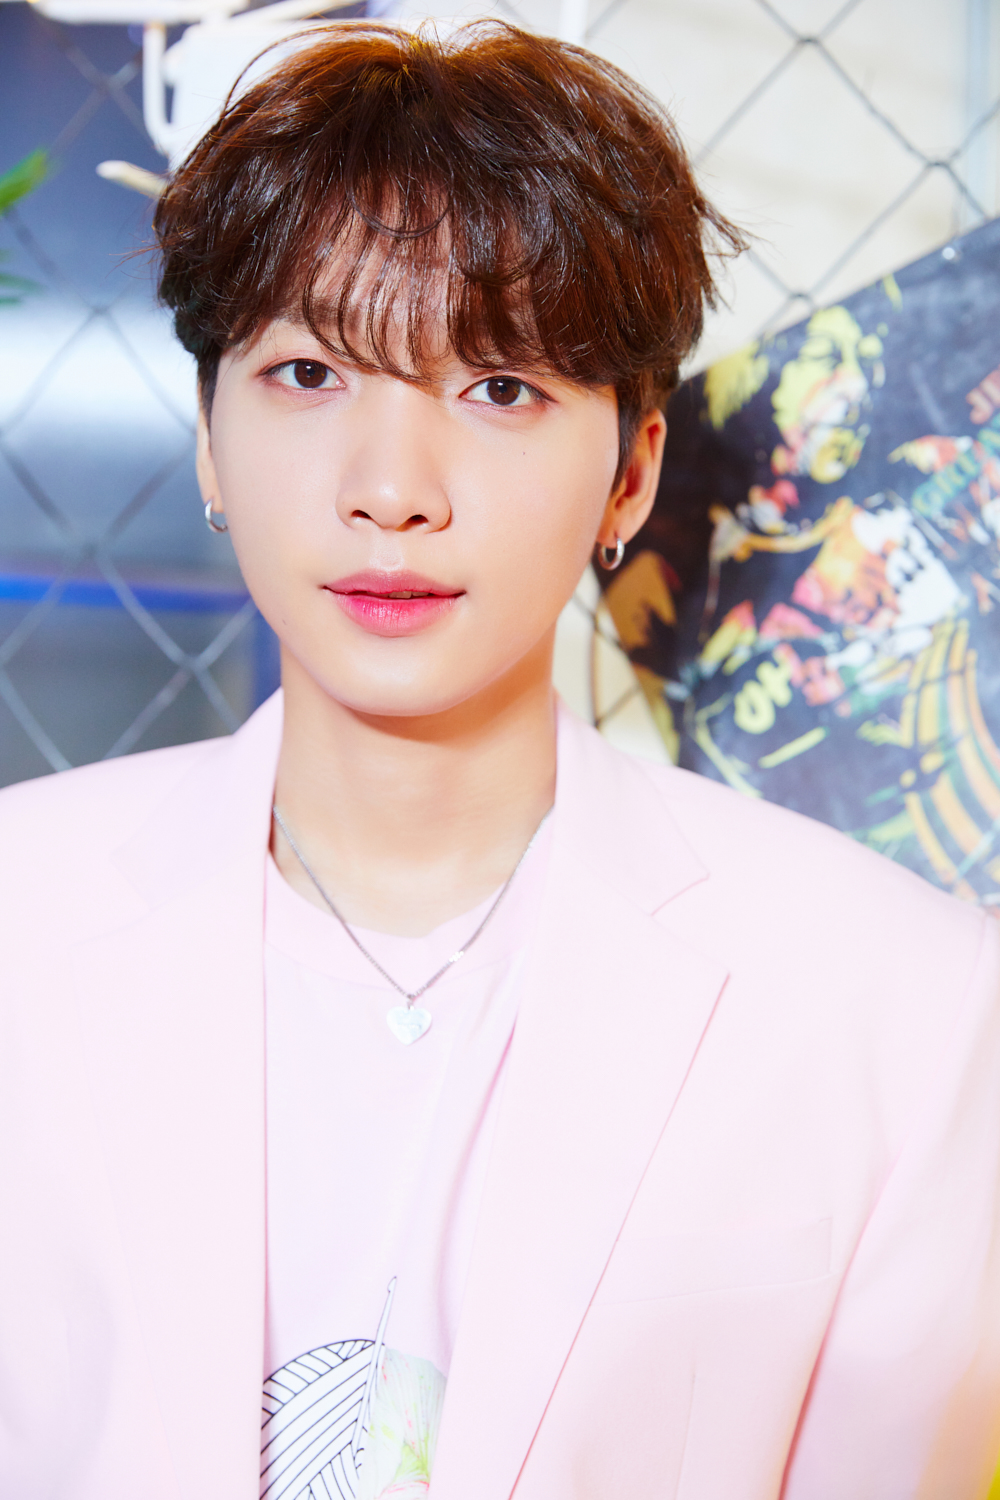 JEONG SEWOON, who held a media listening session today (14th) at 4 PM celebrating the 1st Studio Album 24 PART 1 (Photo Credit=Starship Entertainment)